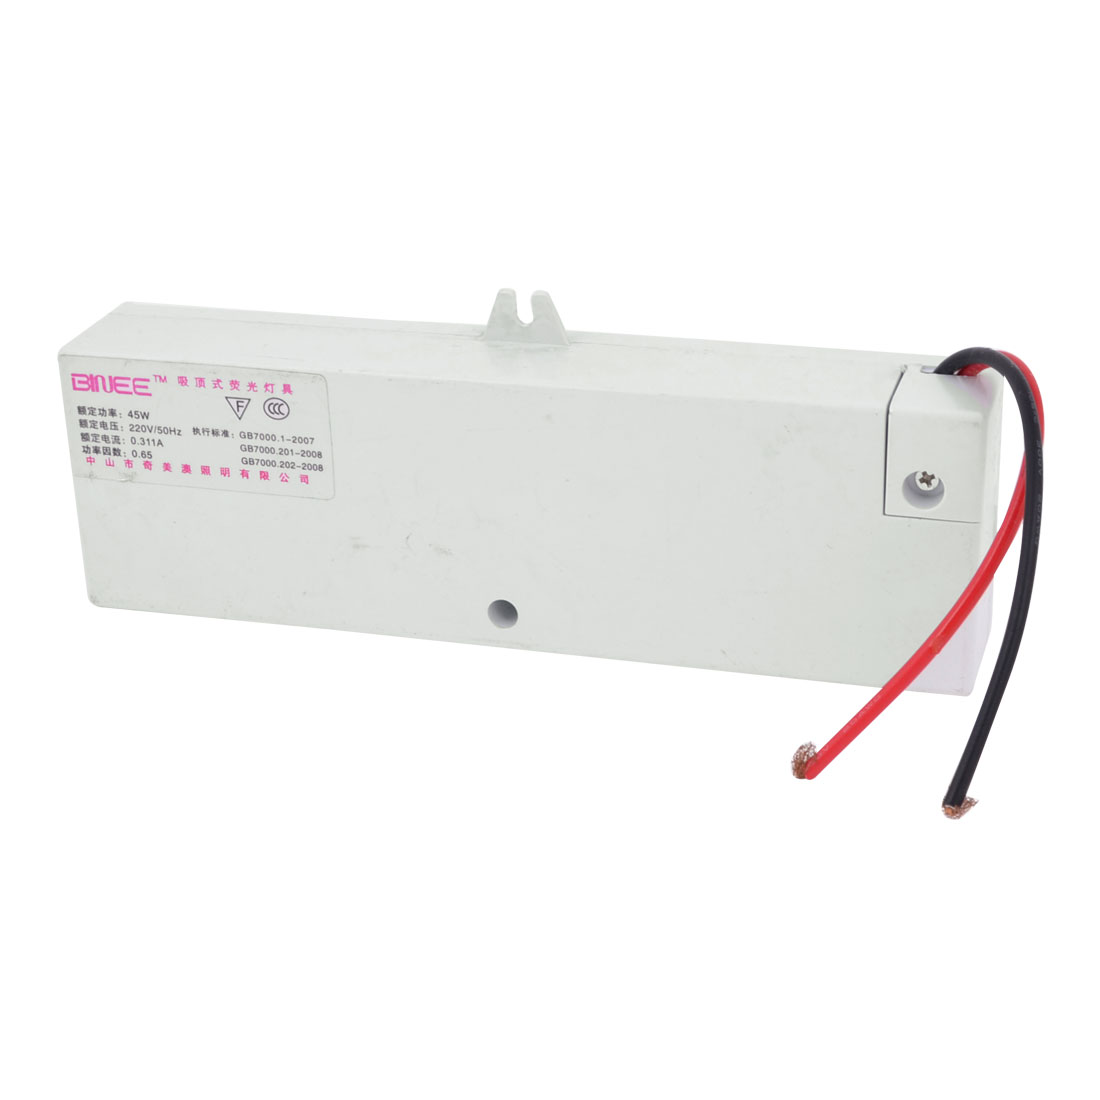 AC 220V 45W 50Hz Energy Saving Fluorescent Lamp Light Electronic Ballast